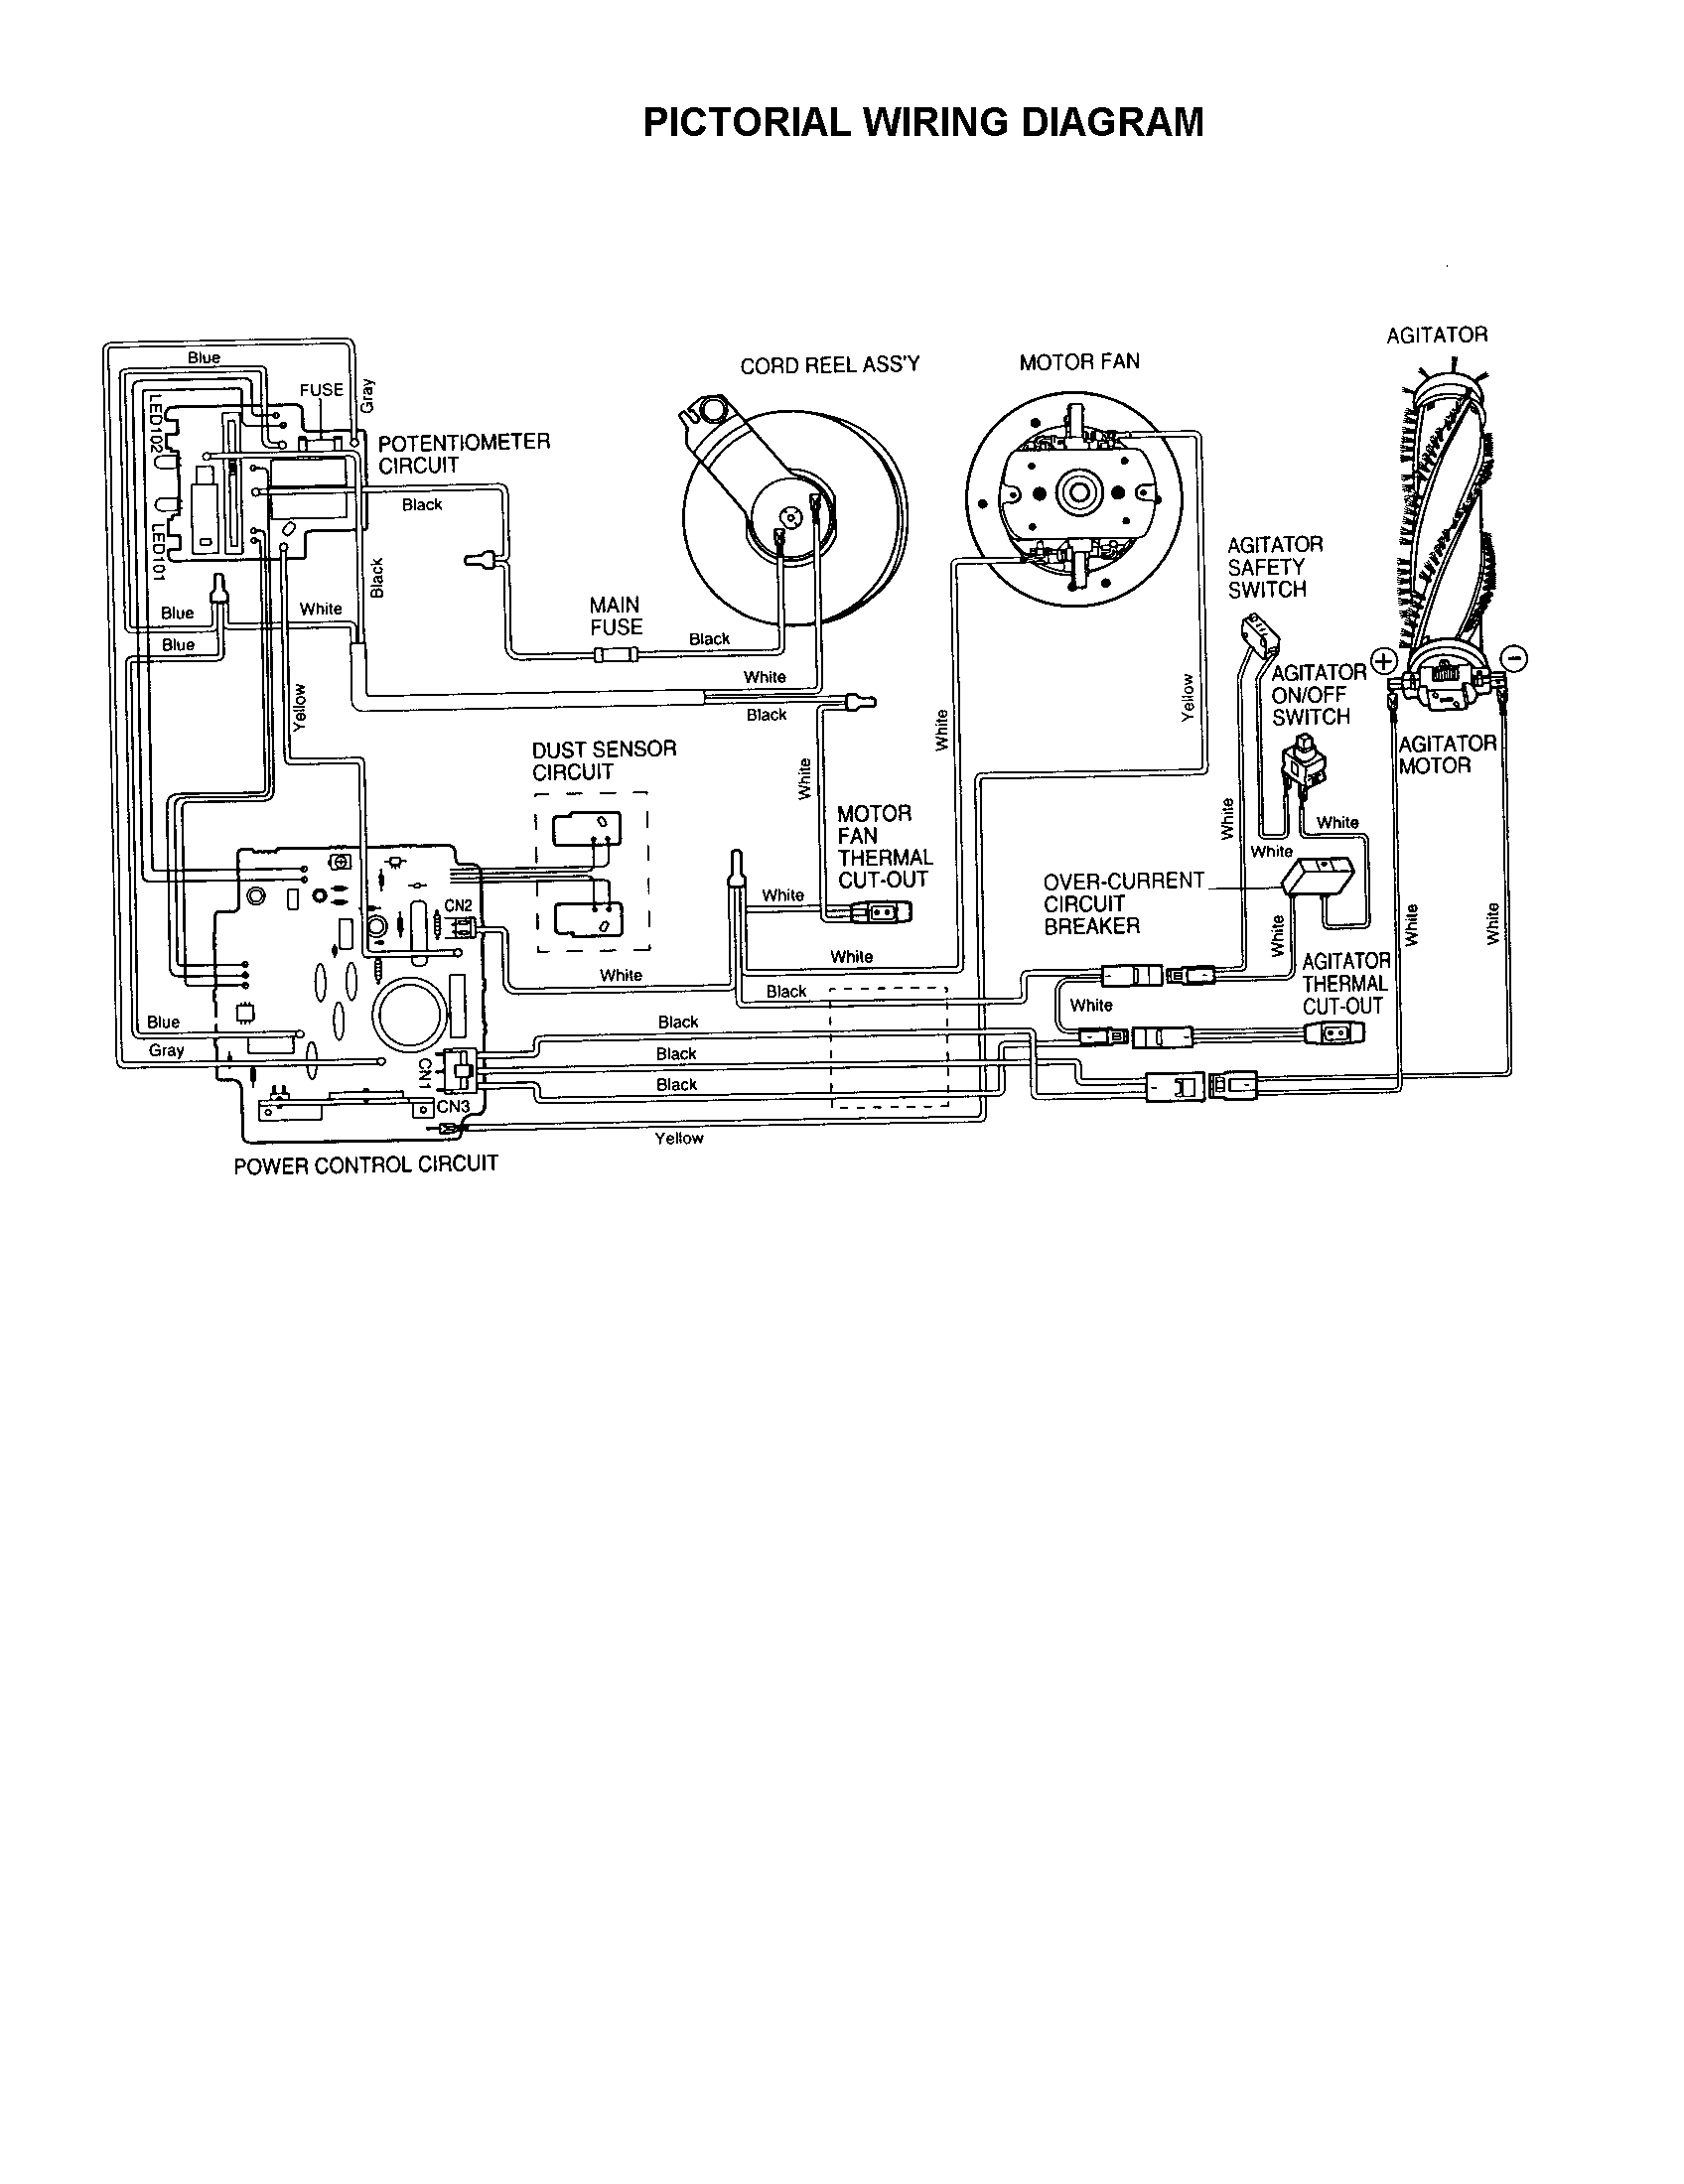 shop vac for on and off switch wiring diagram ta 7671  shop vac motor diagram motor repalcement parts and  motor diagram motor repalcement parts